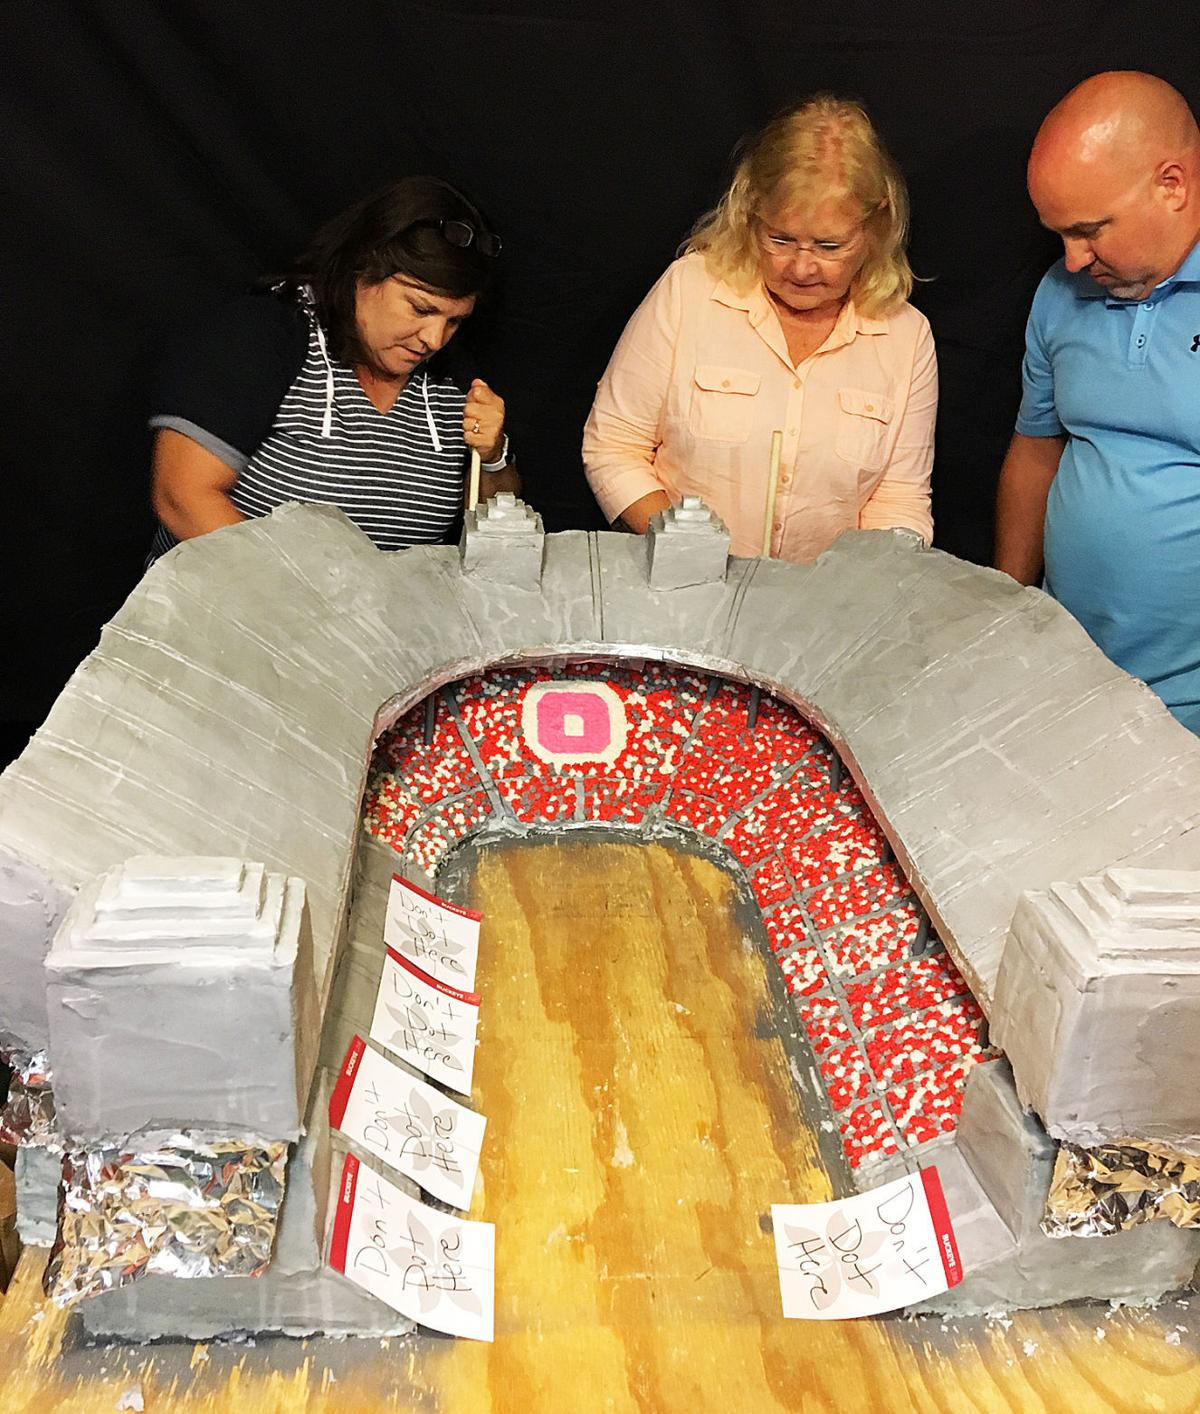 logan high school graduate is working on the 2017 ohio stadium cake along with her friends marilyn yeamans and christopher conrad 1992 lhs grad